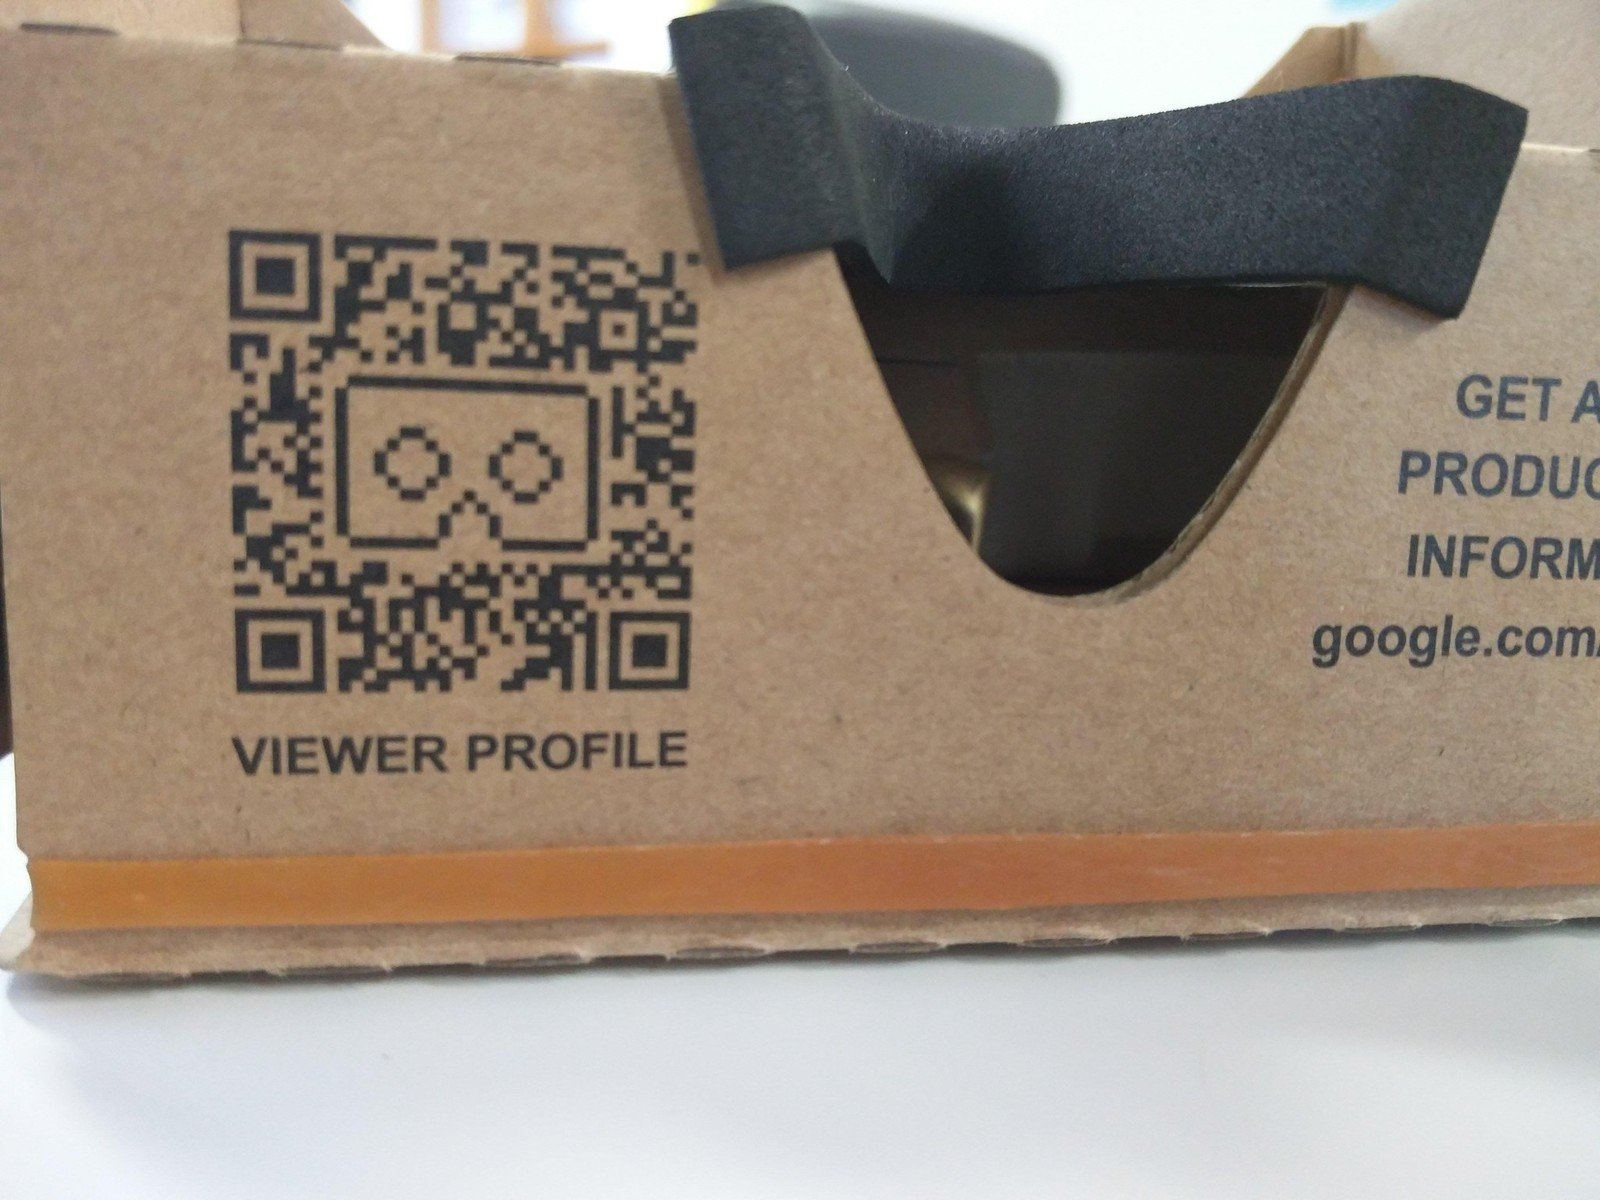 You're ready to go! To try it out for the first time, load the Cardboard app onto your phone. You'll be prompted to scan the viewer profile QR code on your viewer.